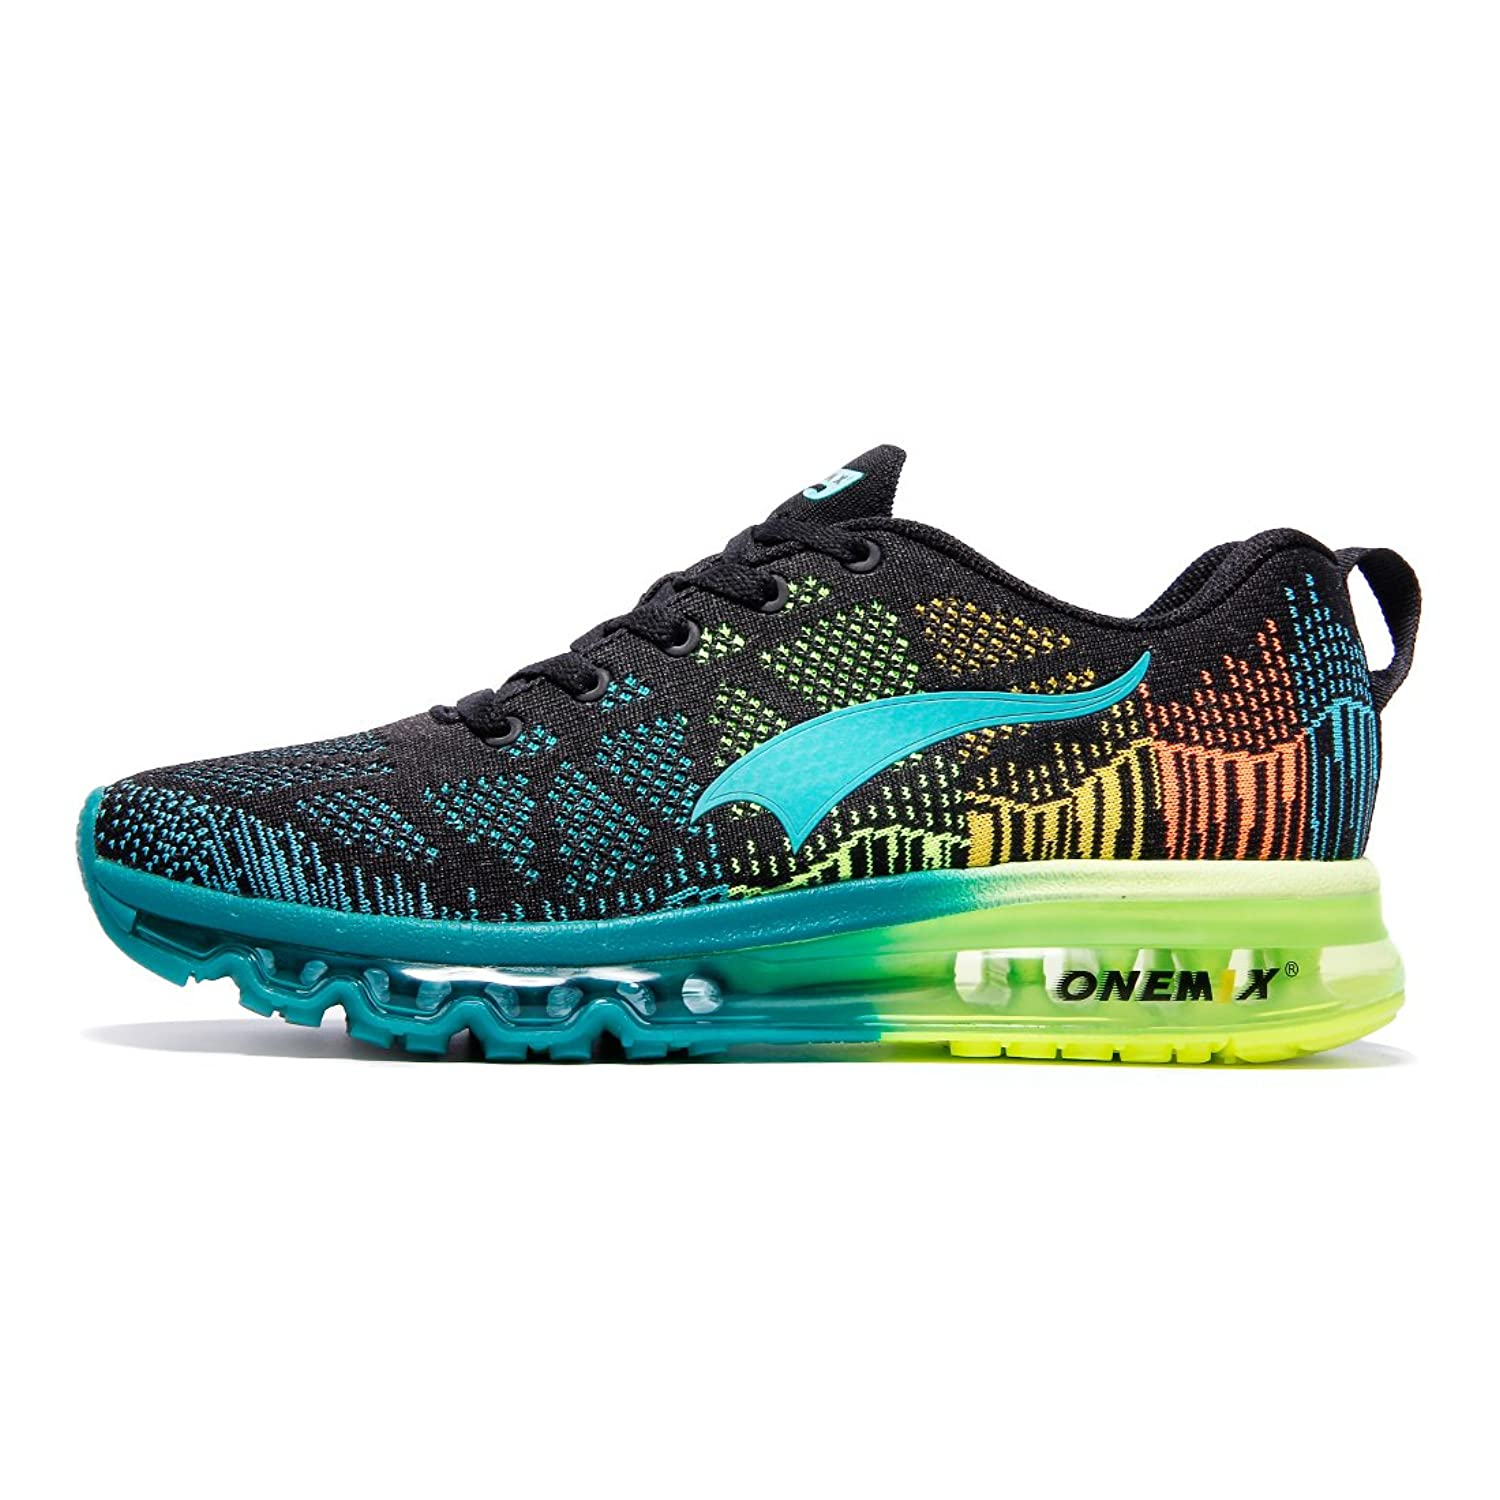 ONEMIX Running Chaussure Hommes 3D Knit Air Max Flyknit Léger pour La  Marche Gym Fitness Jogging 7dde0f52add6